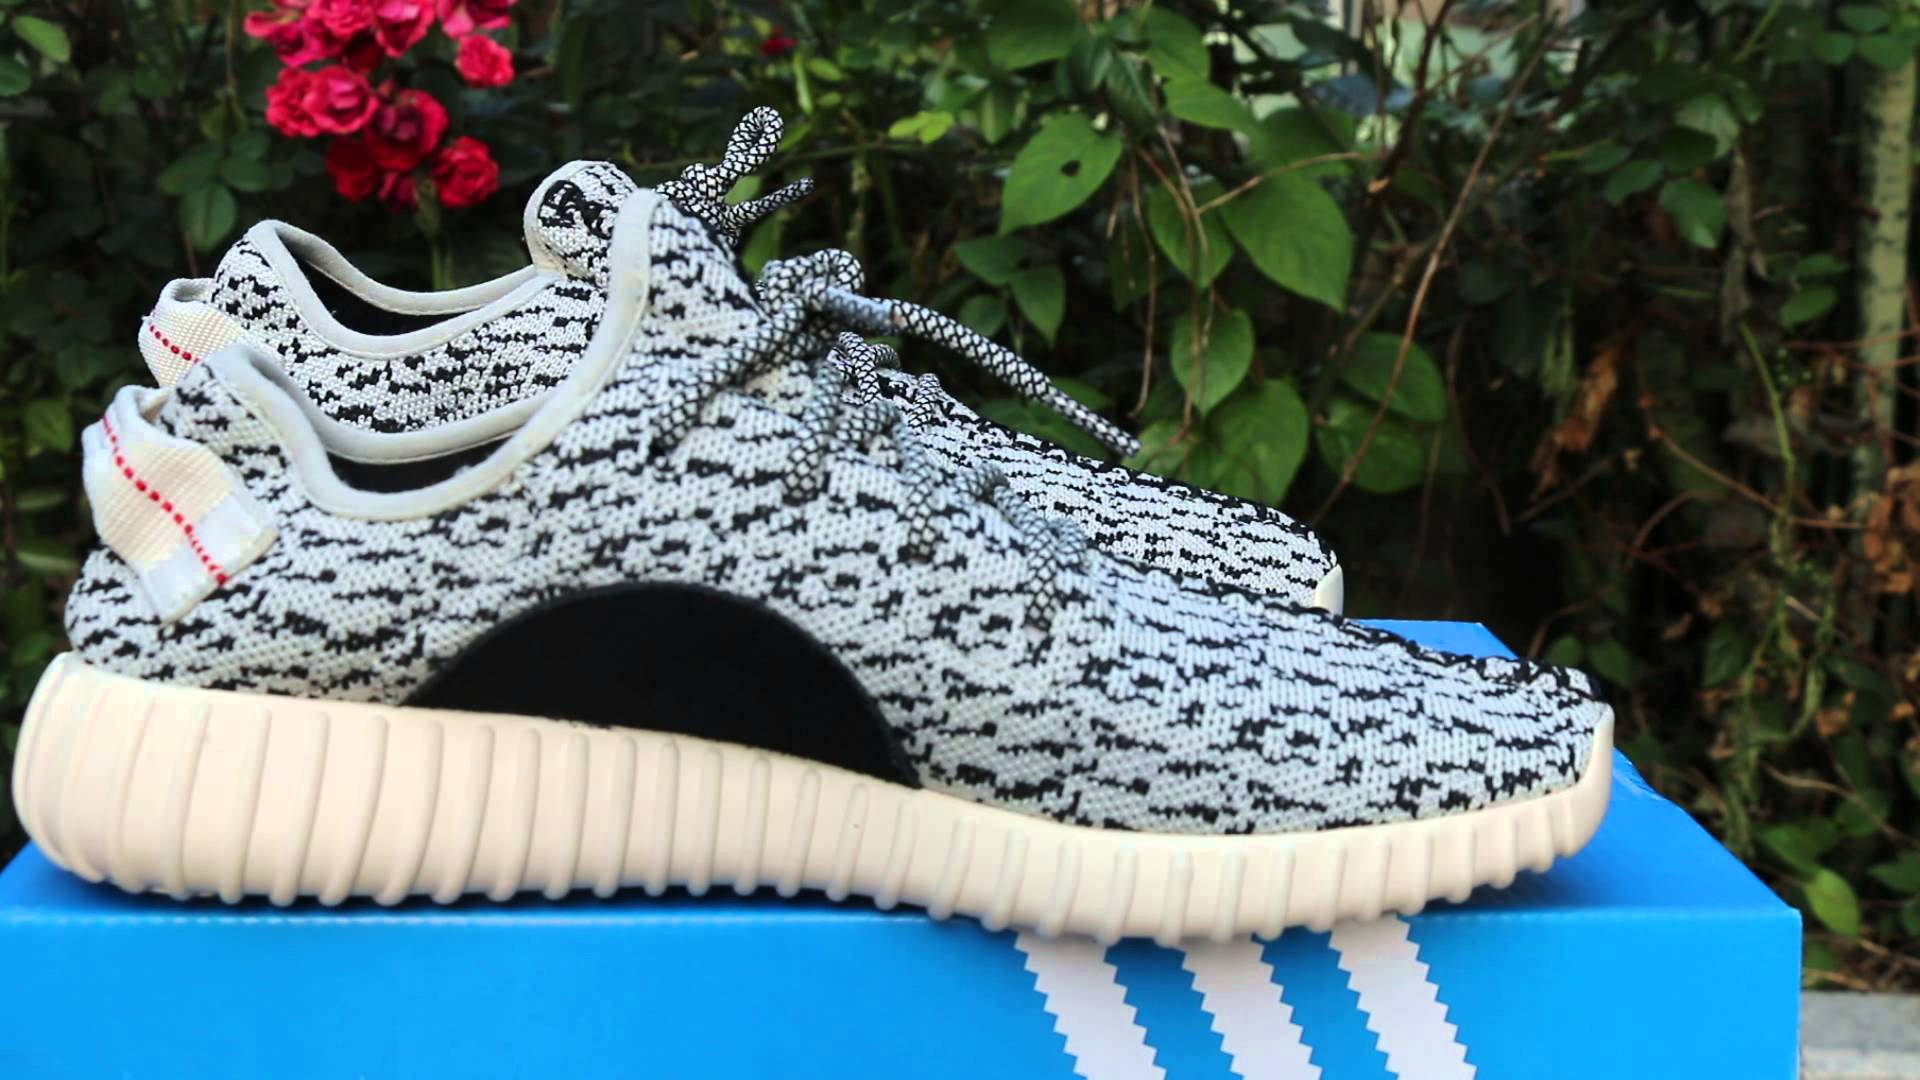 Adidas YEEZY BOOST 350 On Feet Review